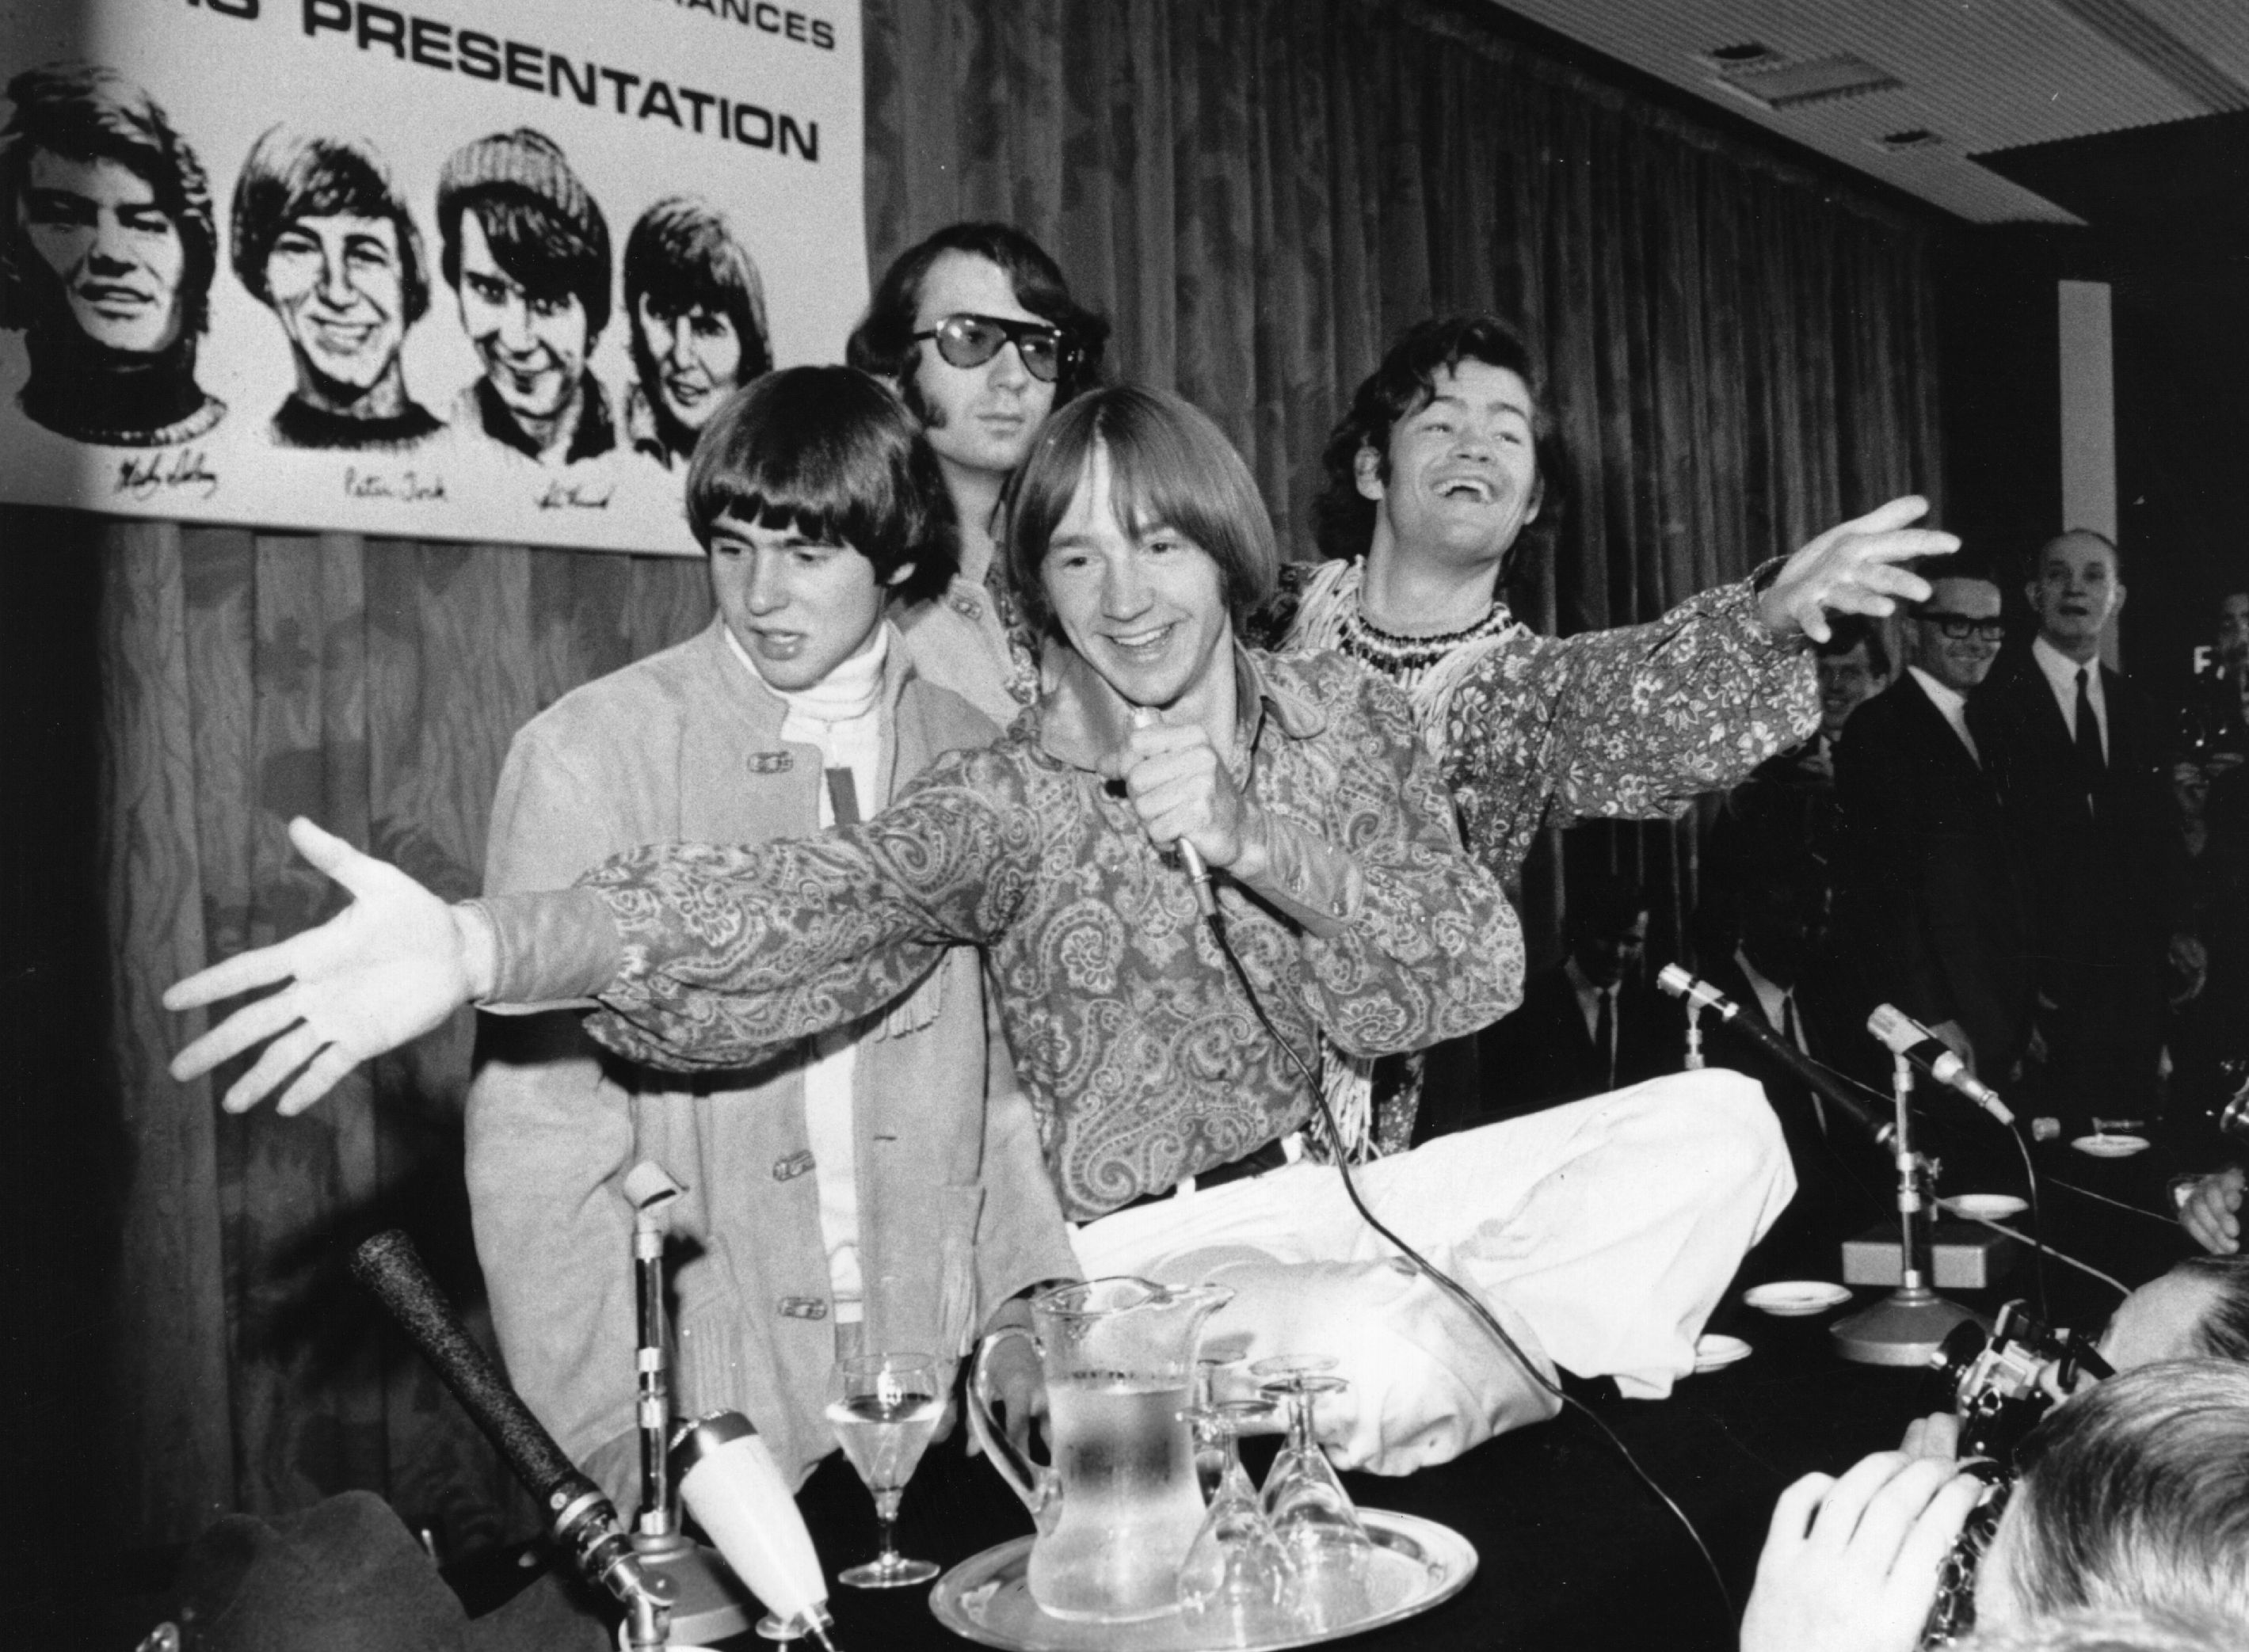 The Monkees band | Photo: Getty Images